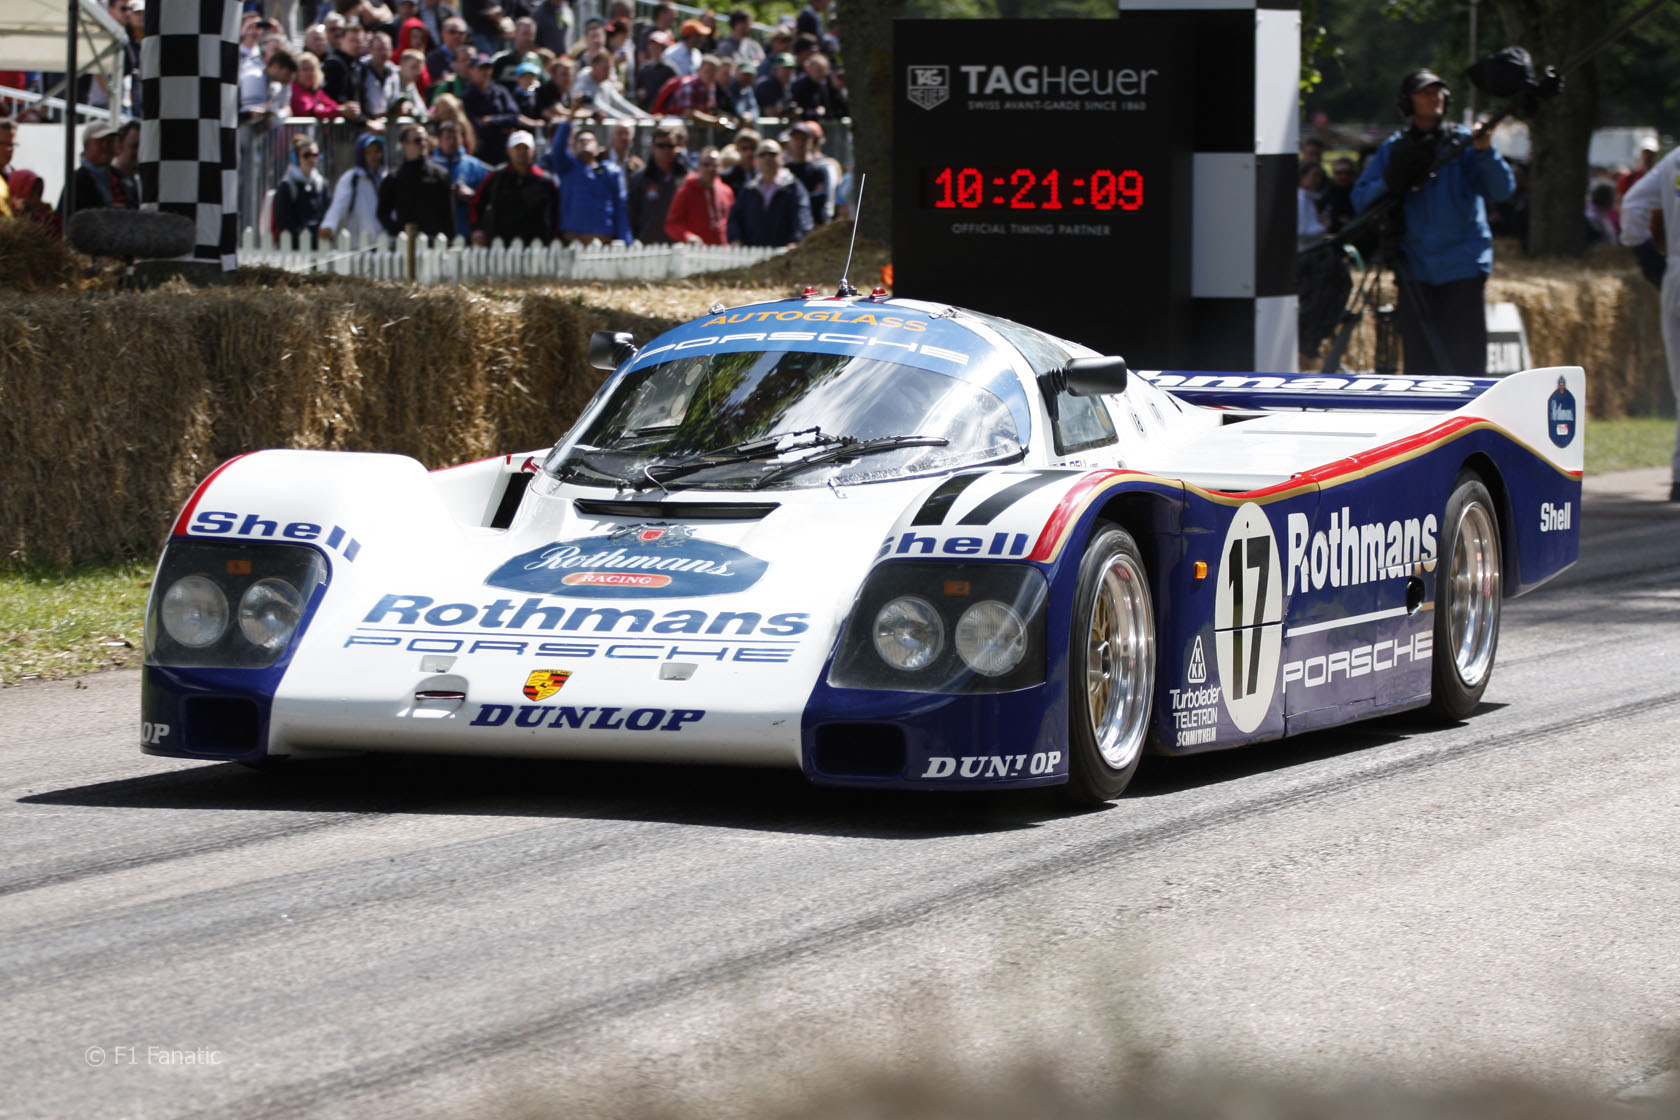 Toyota Corolla Le >> 1987 Porsche 962 Photos, Informations, Articles ...